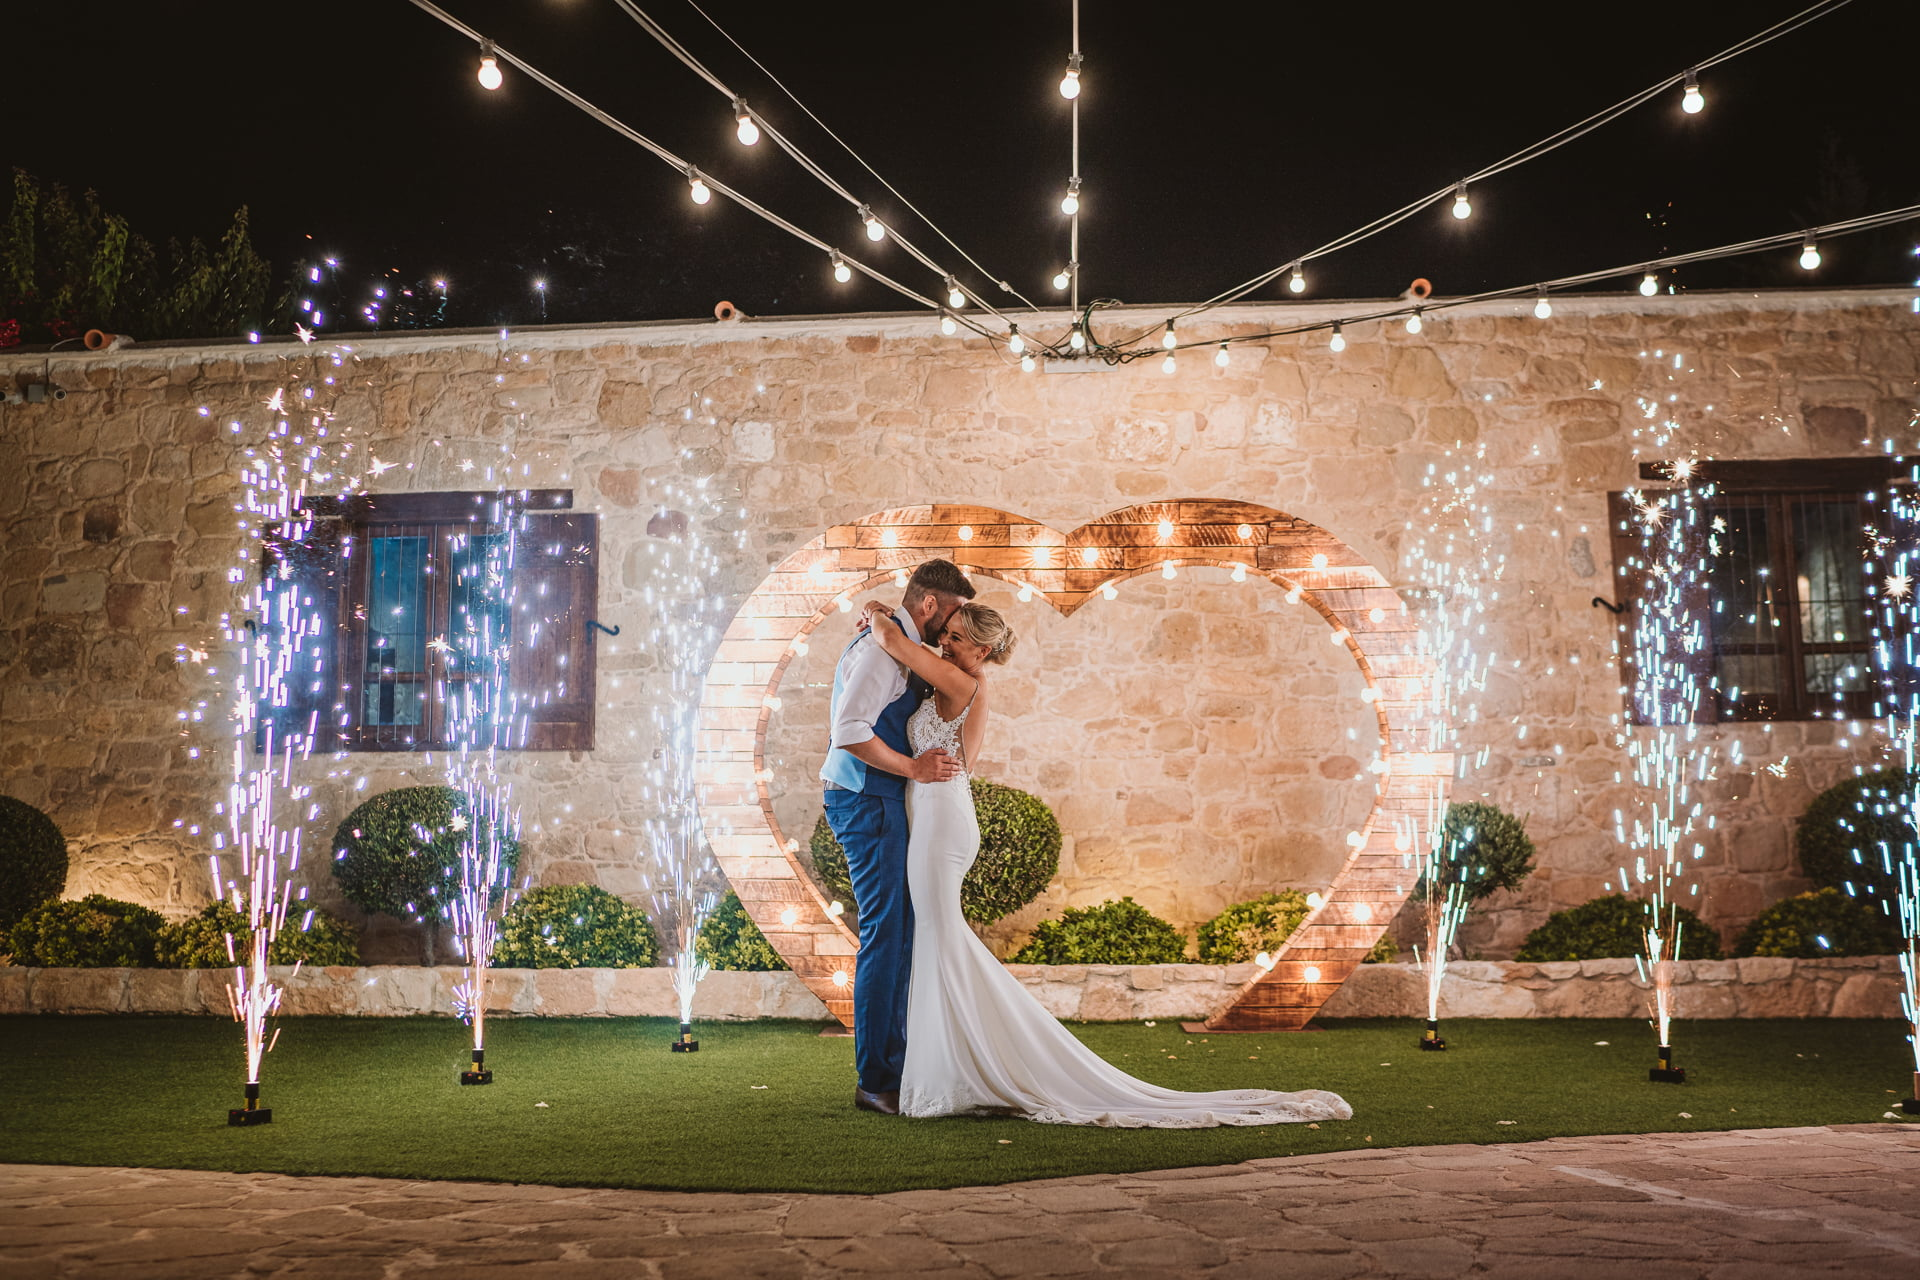 Natalie and Jack's Firework-Filled Liopetro Wedding 2